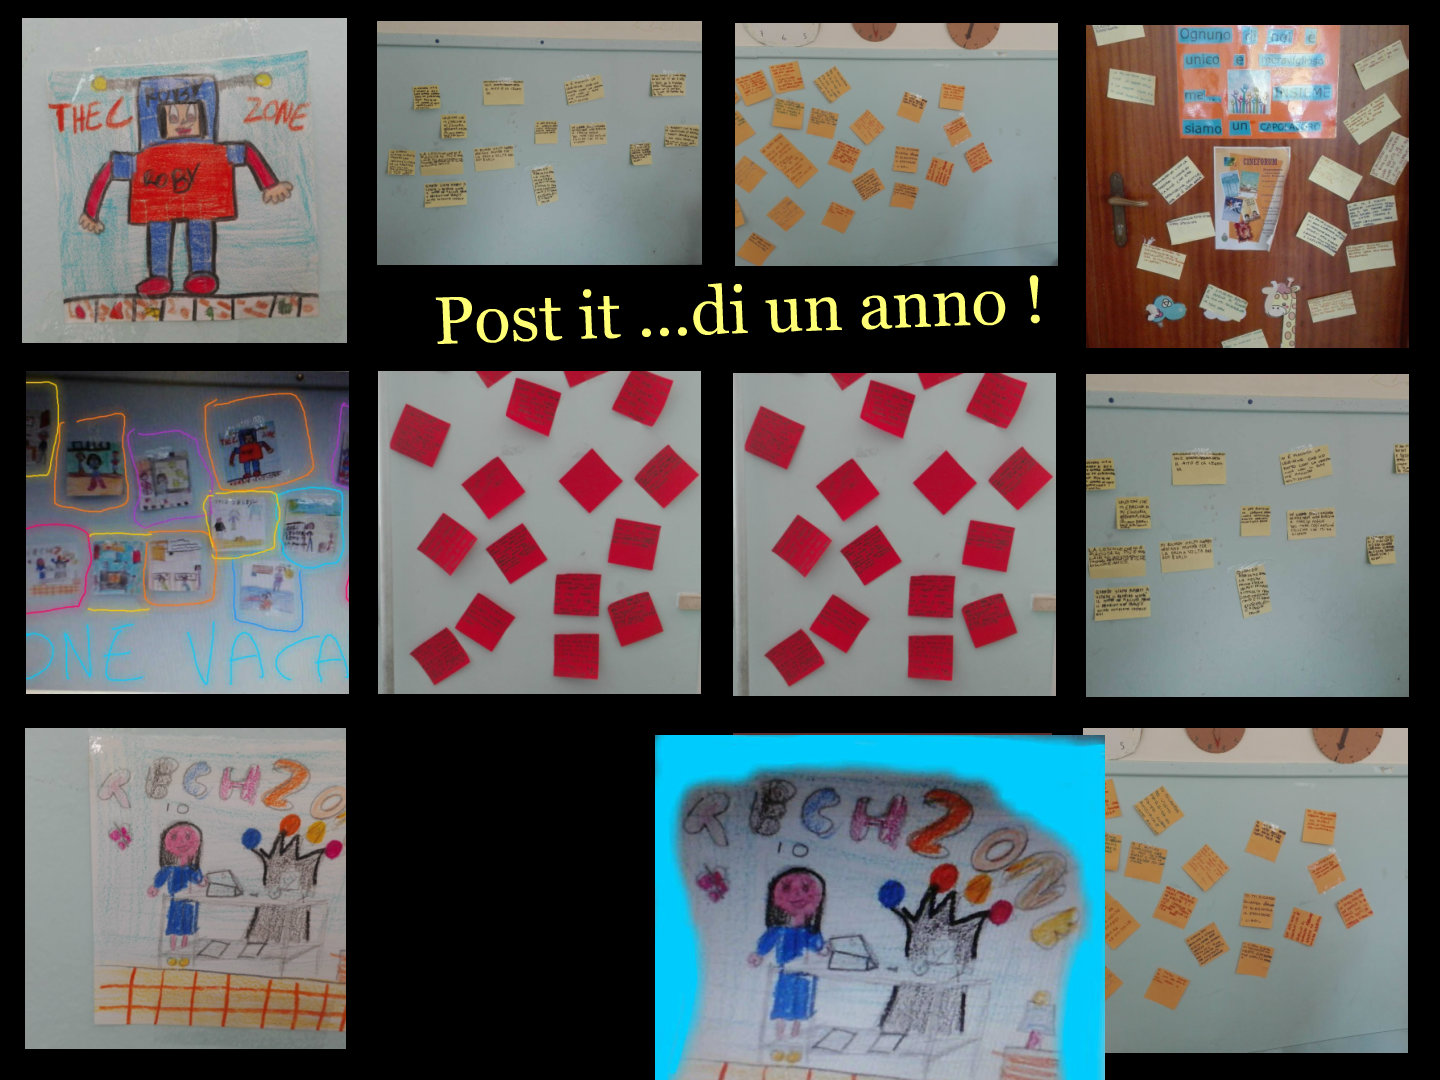 Post it…di un anno!